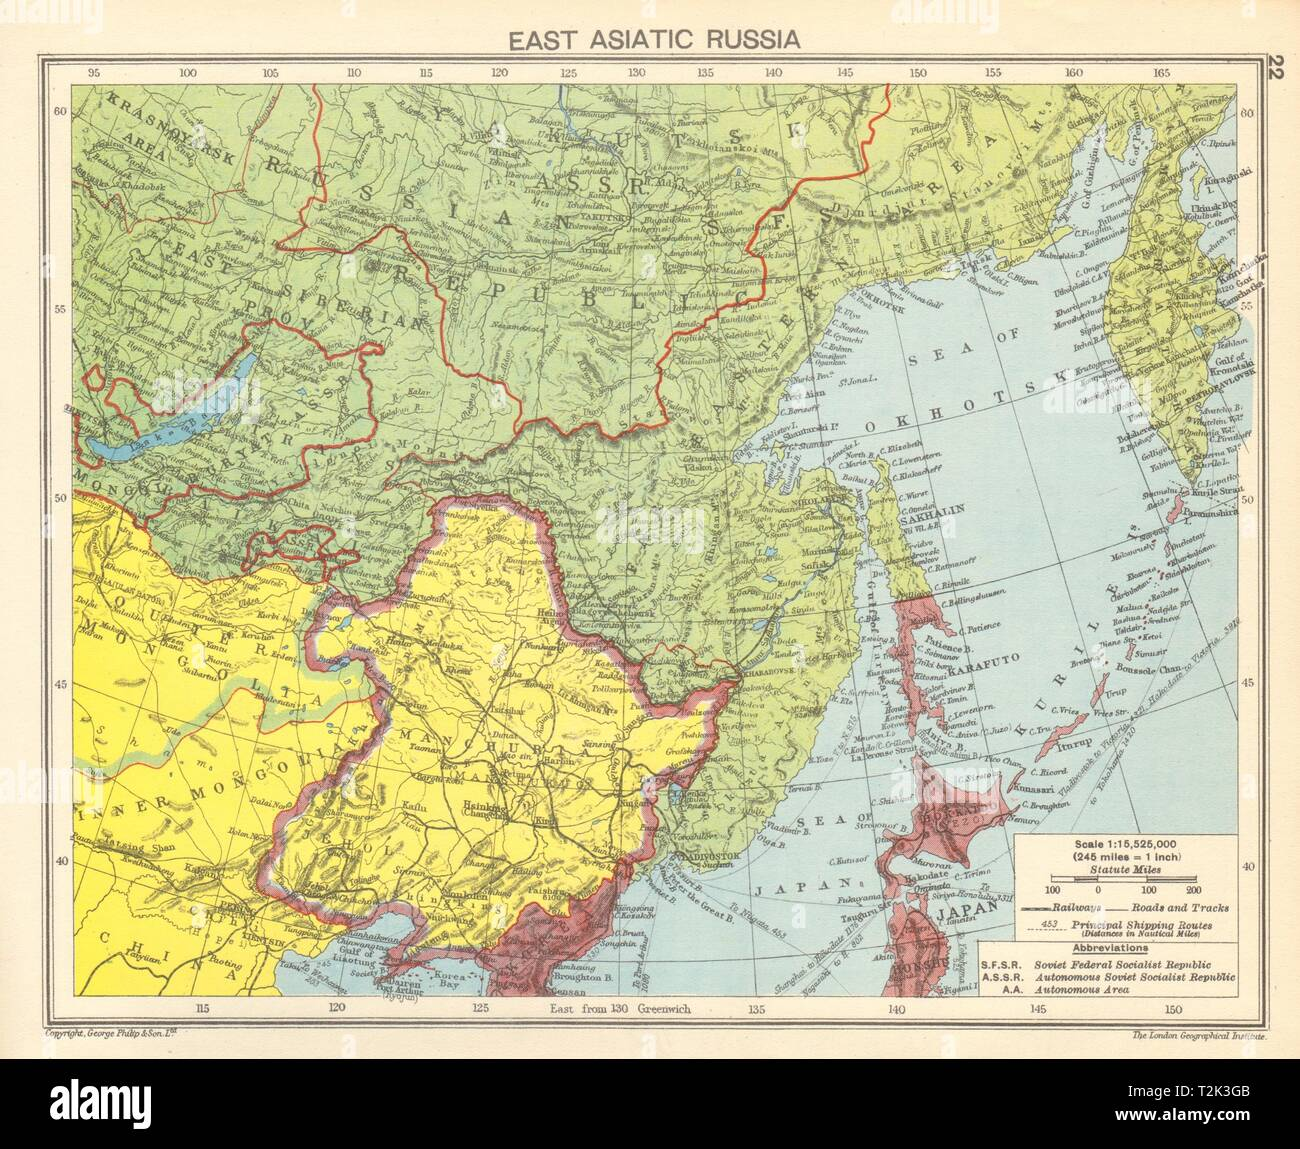 SECOND WORLD WAR. Russia & Japanese-occupied Manchuria ... on persia map, nanking massacre, hainan map, sweden map, empire of japan, russo-japanese war, kazakhstan map, gobi desert map, new guinea map, shenyang map, austria map, asia map, great wall of china, second sino-japanese war, beijing map, first sino-japanese war, ming dynasty, inner mongolia, formosa map, china map, pakistan map, xinjiang map, sakhalin map, pearl harbor map, abyssinia map, angola map, qing dynasty, great wall map, japanese invasion of manchuria, nicaragua map,